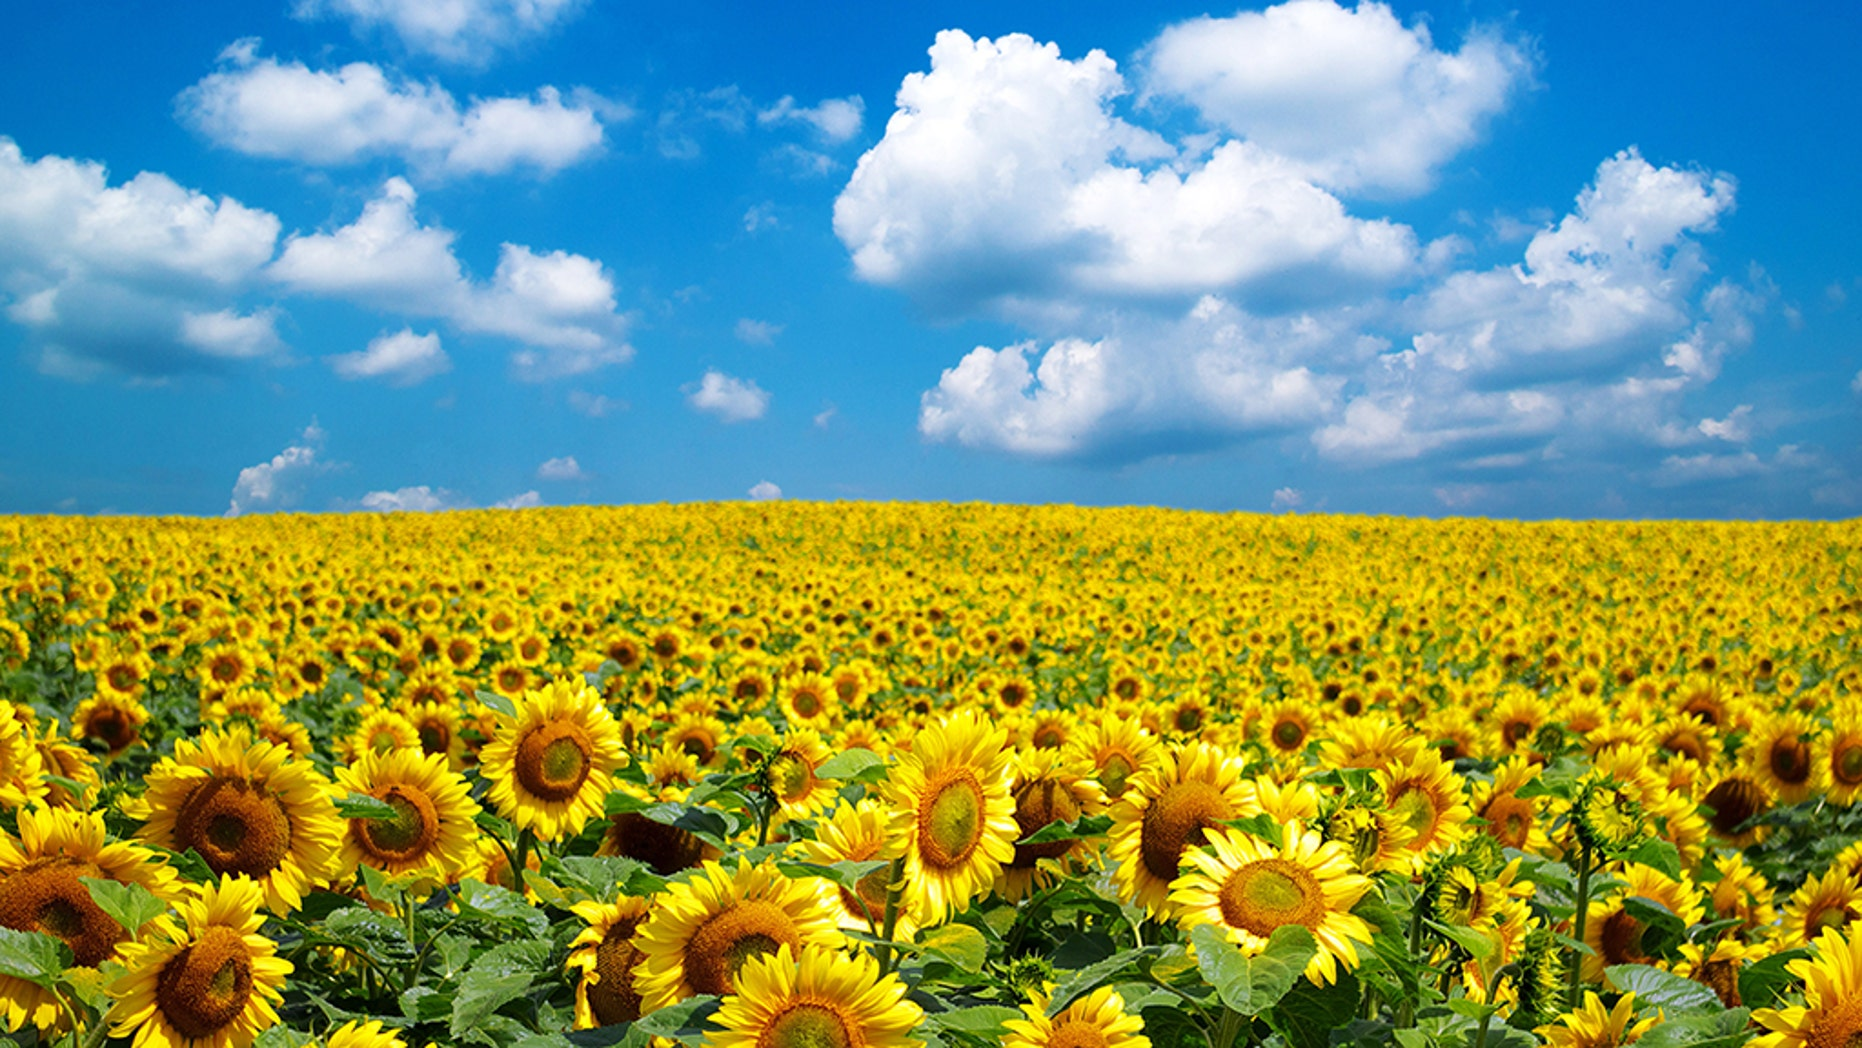 Sunflower Farm Closes After Being Inundated With Selfie Seekers